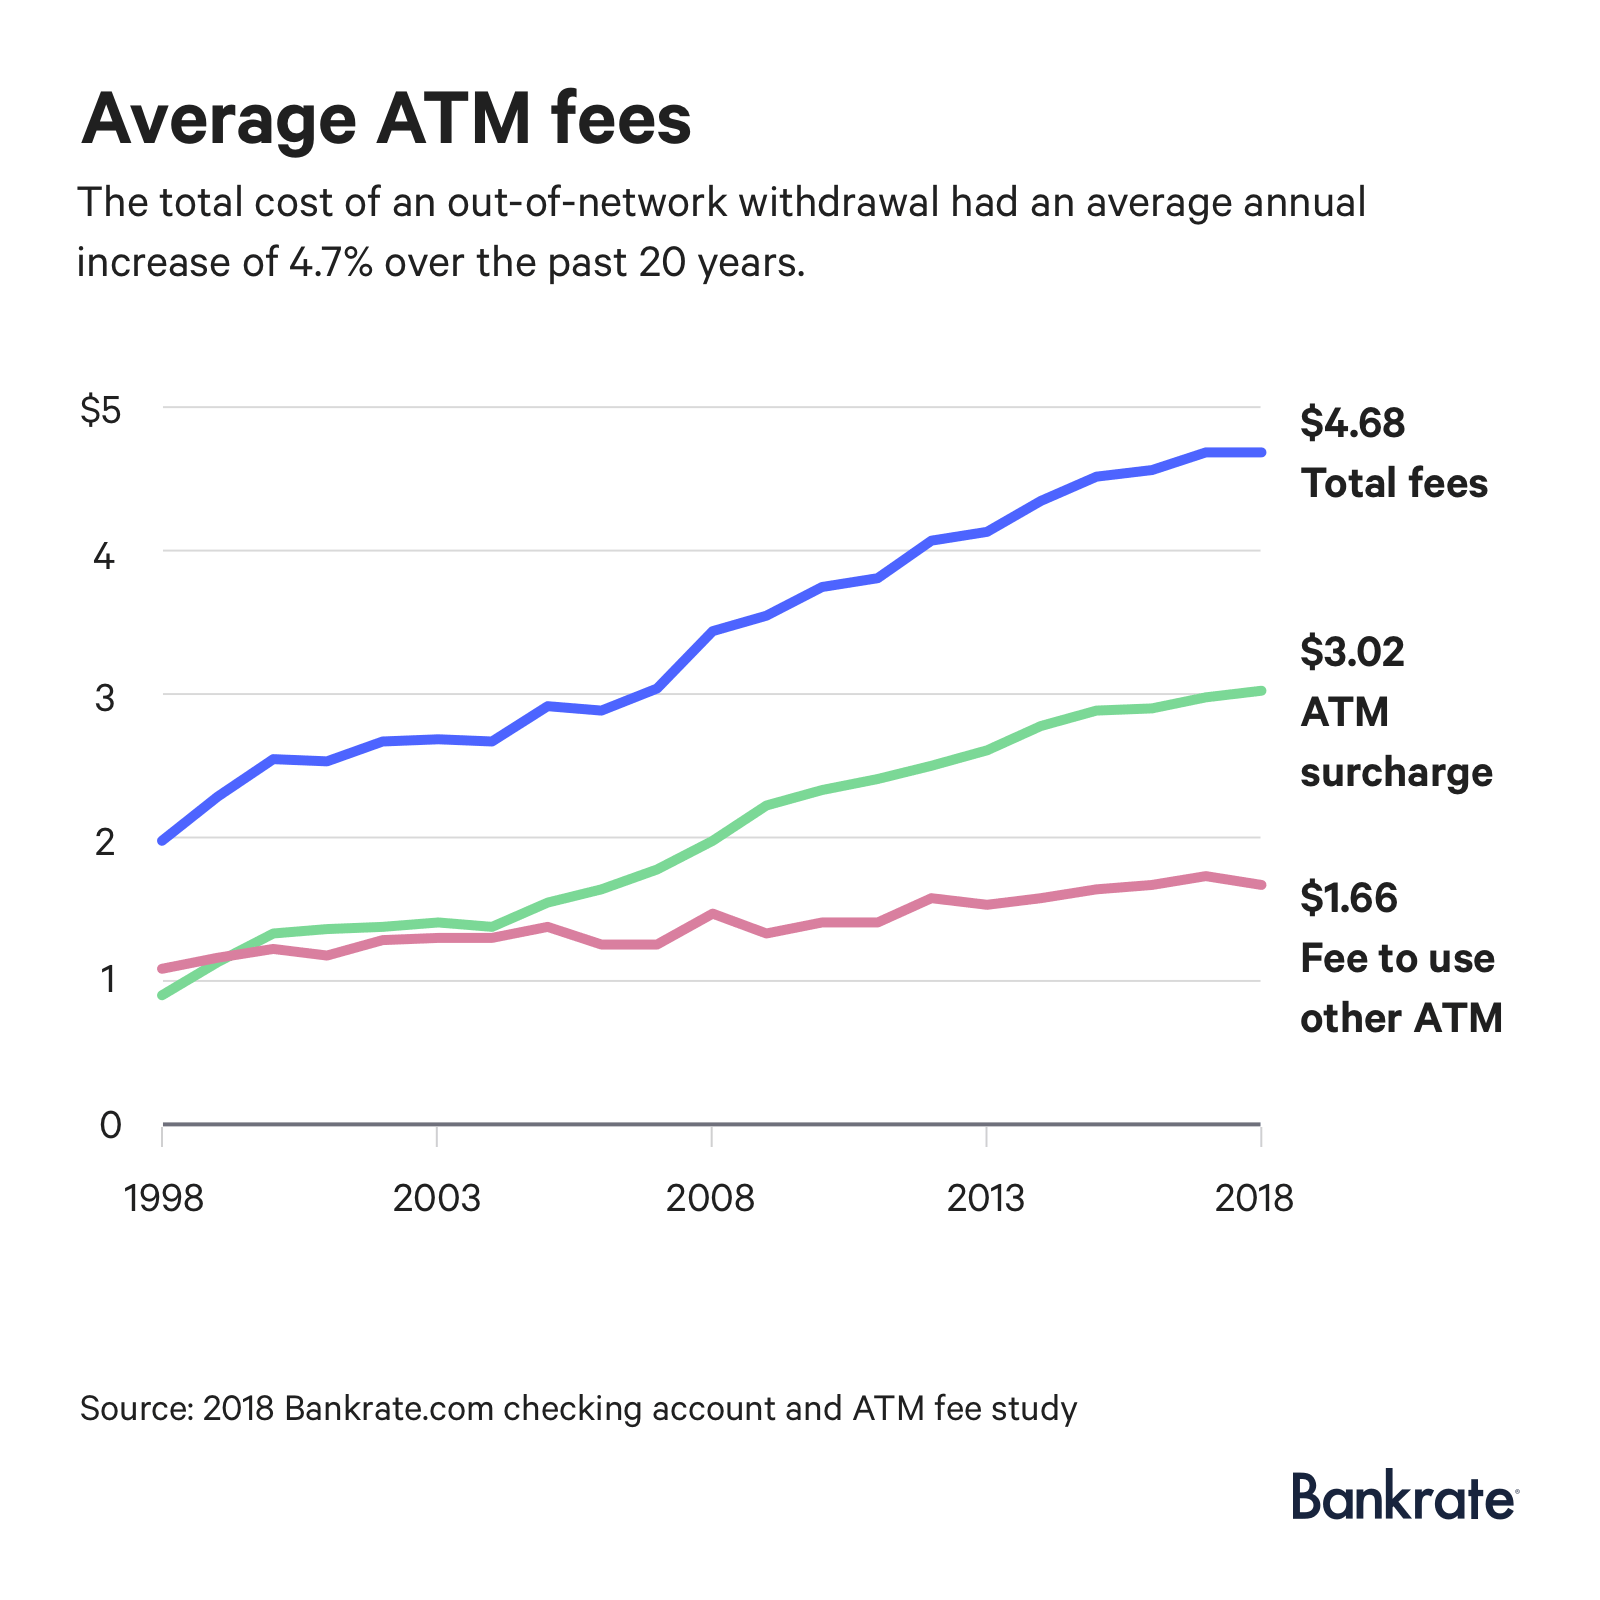 Graph: The average total cost of an out-of-network ATM withdrawal is $4.68.